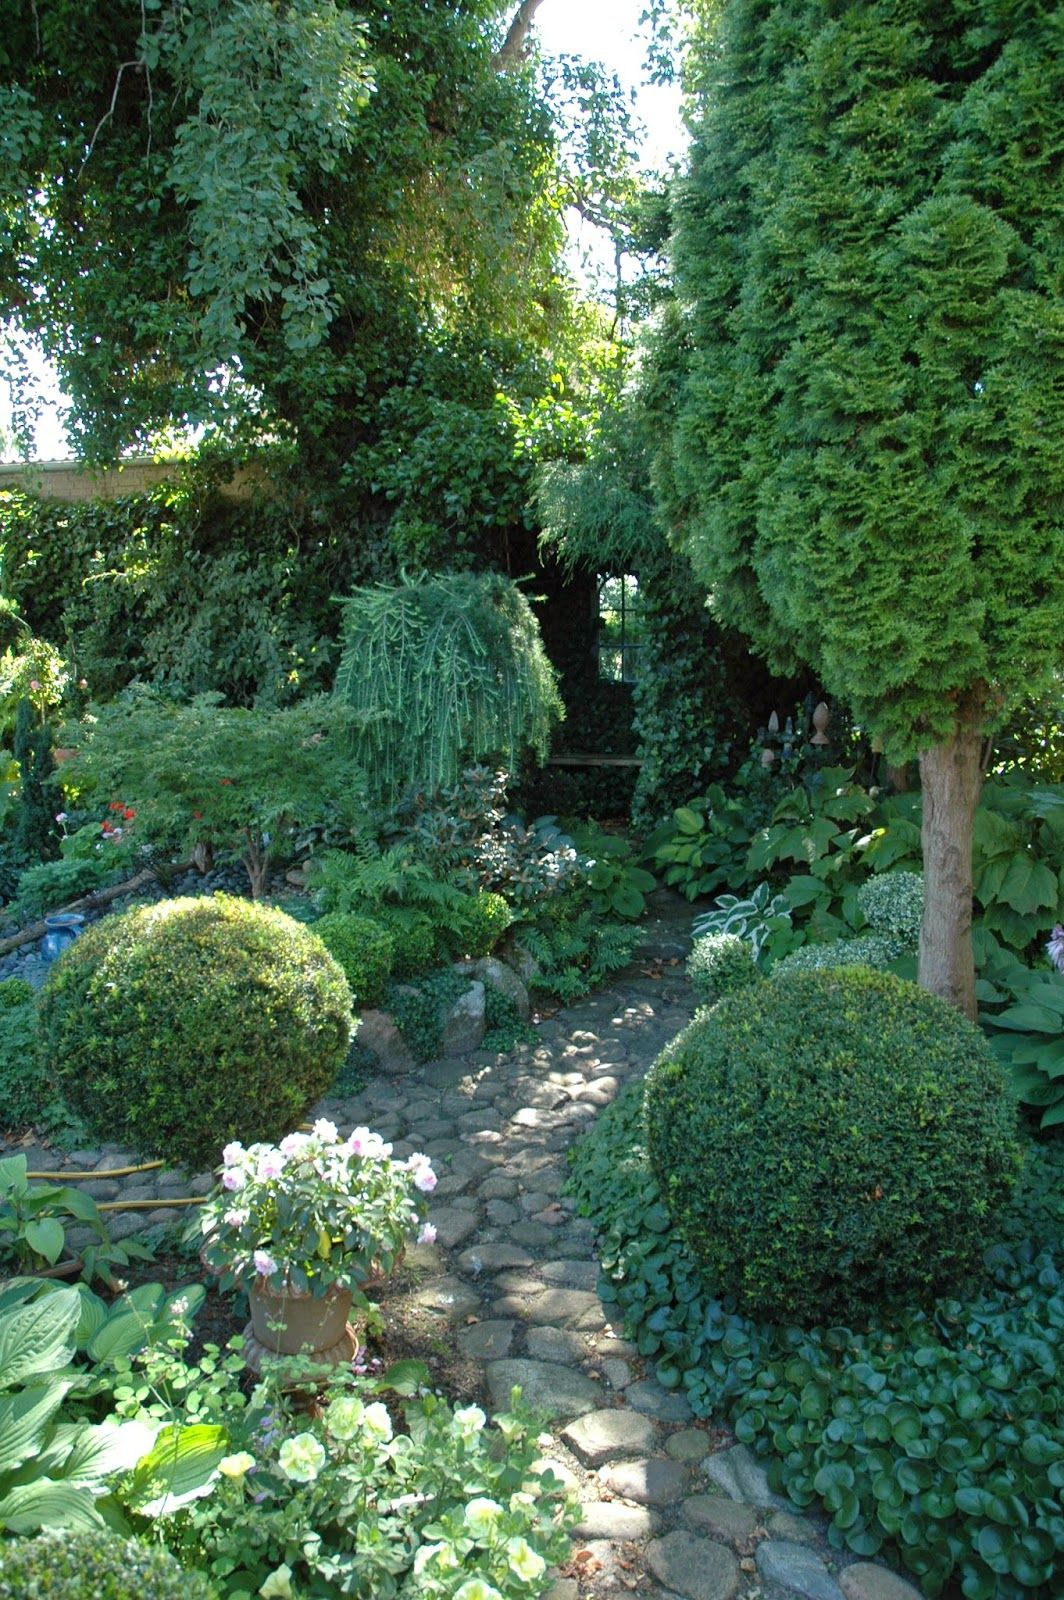 Tall Trees Provided Filtered Light For Green On Green Garden Of Pachysandra Hostas And Clipped